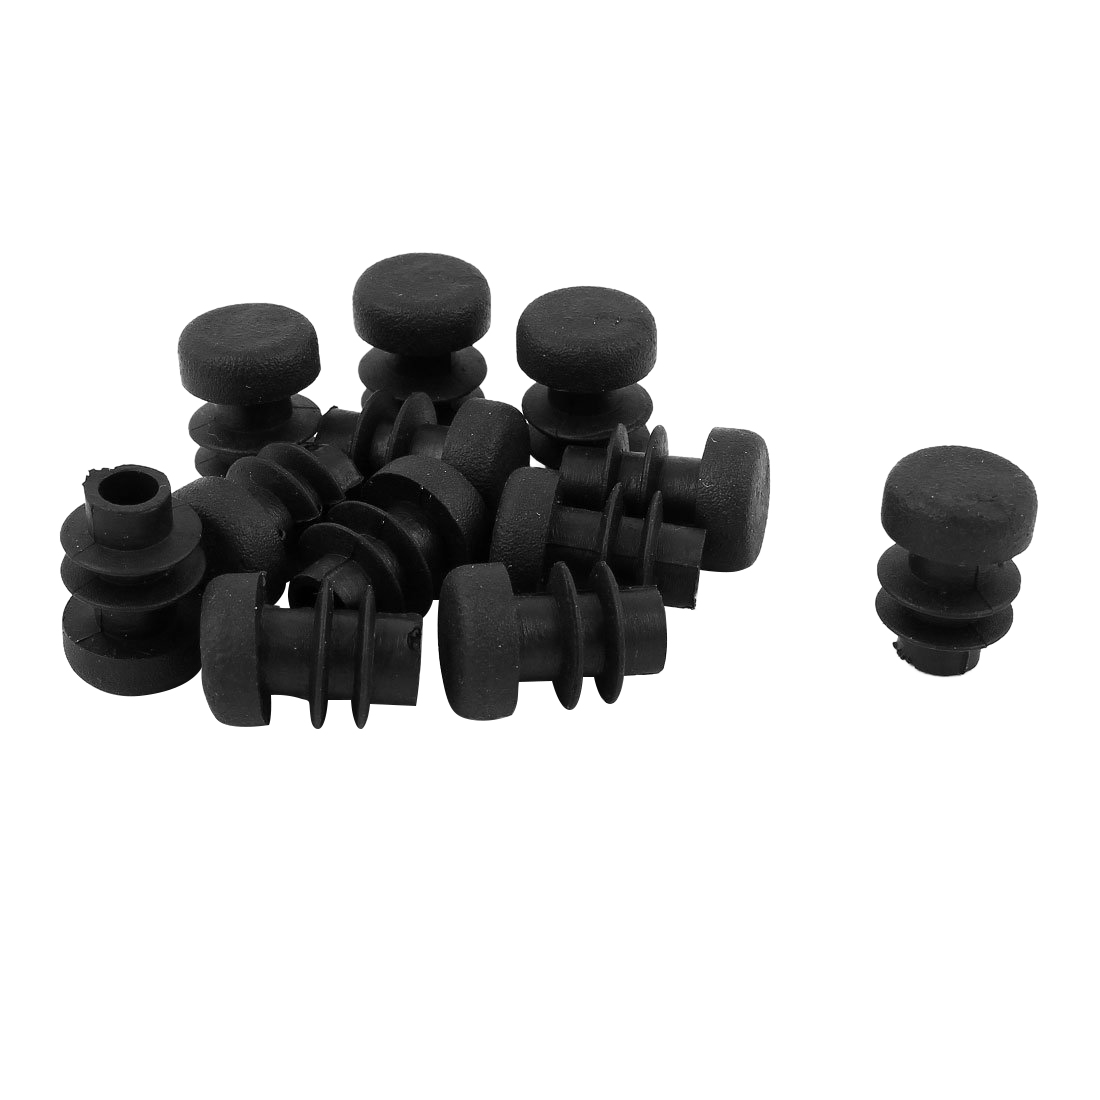 AIMA 12 Pcs Plastic 12mm Pipe End Blanking Caps Bung Tube Insert Plug Round Black nk 3 pcs set original fr doll head for fr dolls 2002 limited edition collection curly hair best diy gift for girls doll